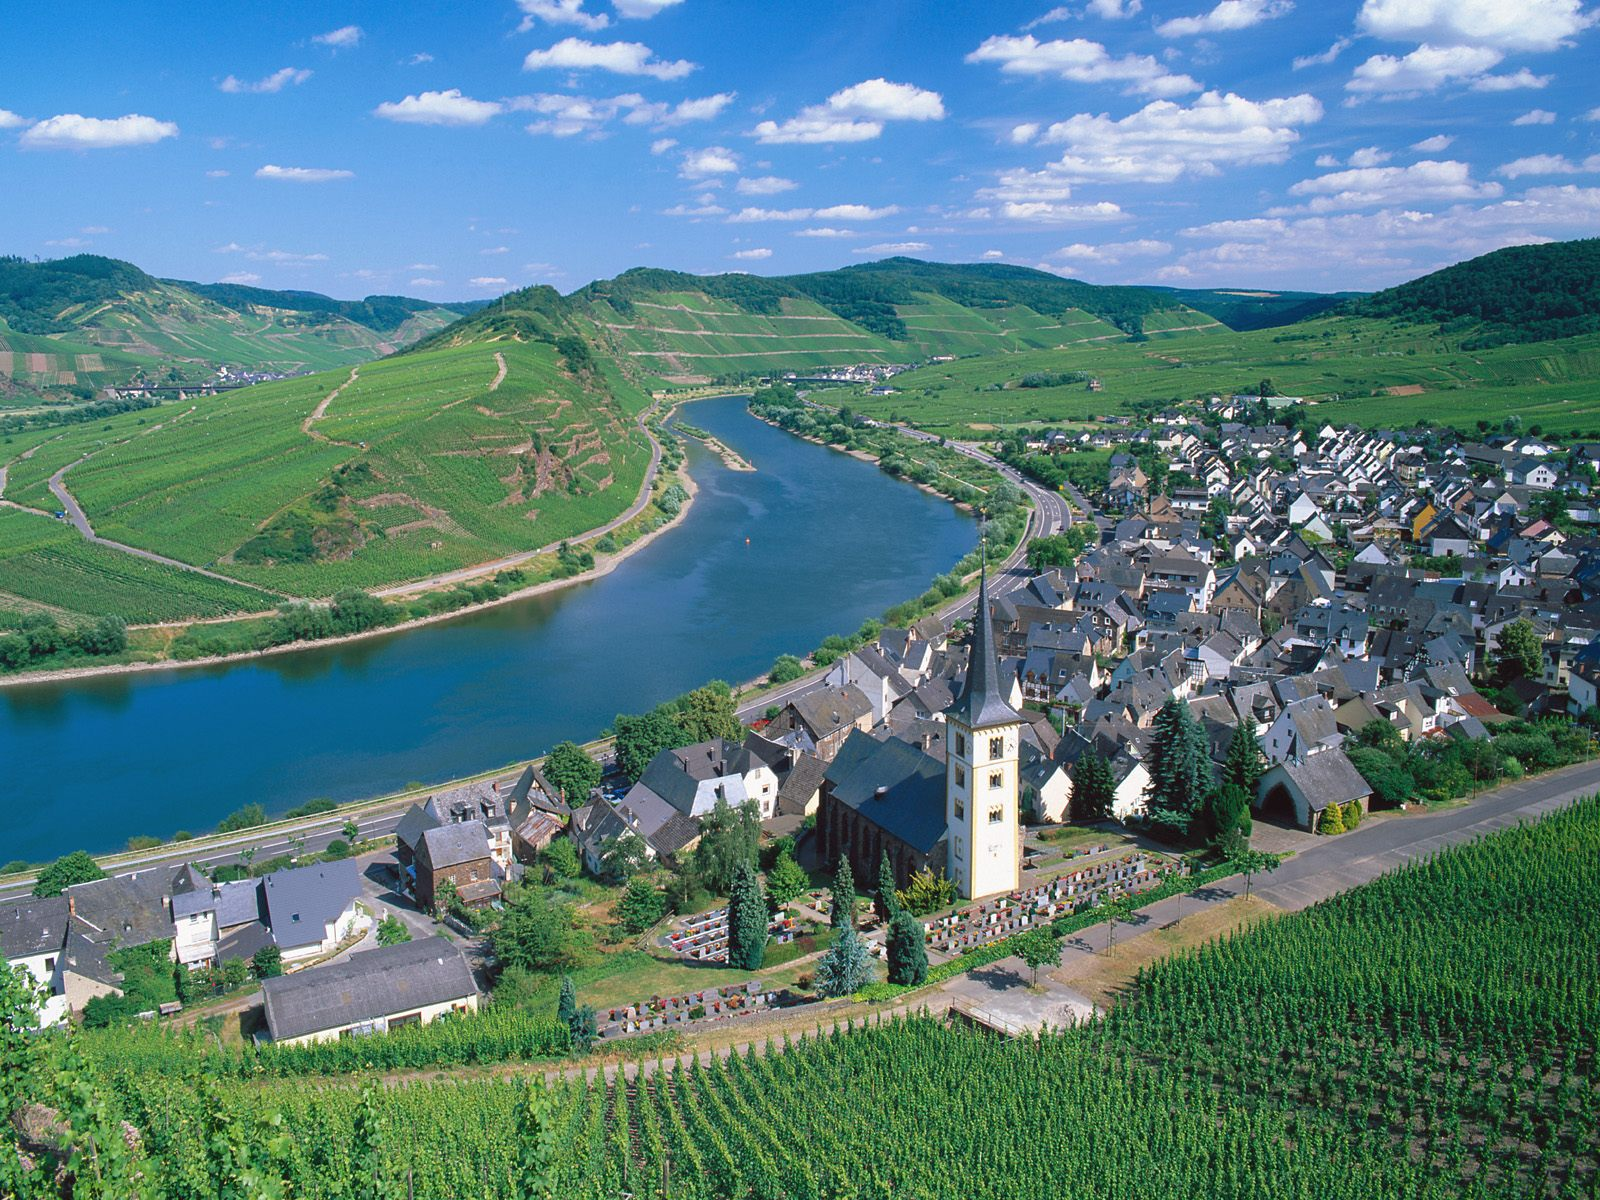 City of Bremm and Moselle River 1600 x 1200